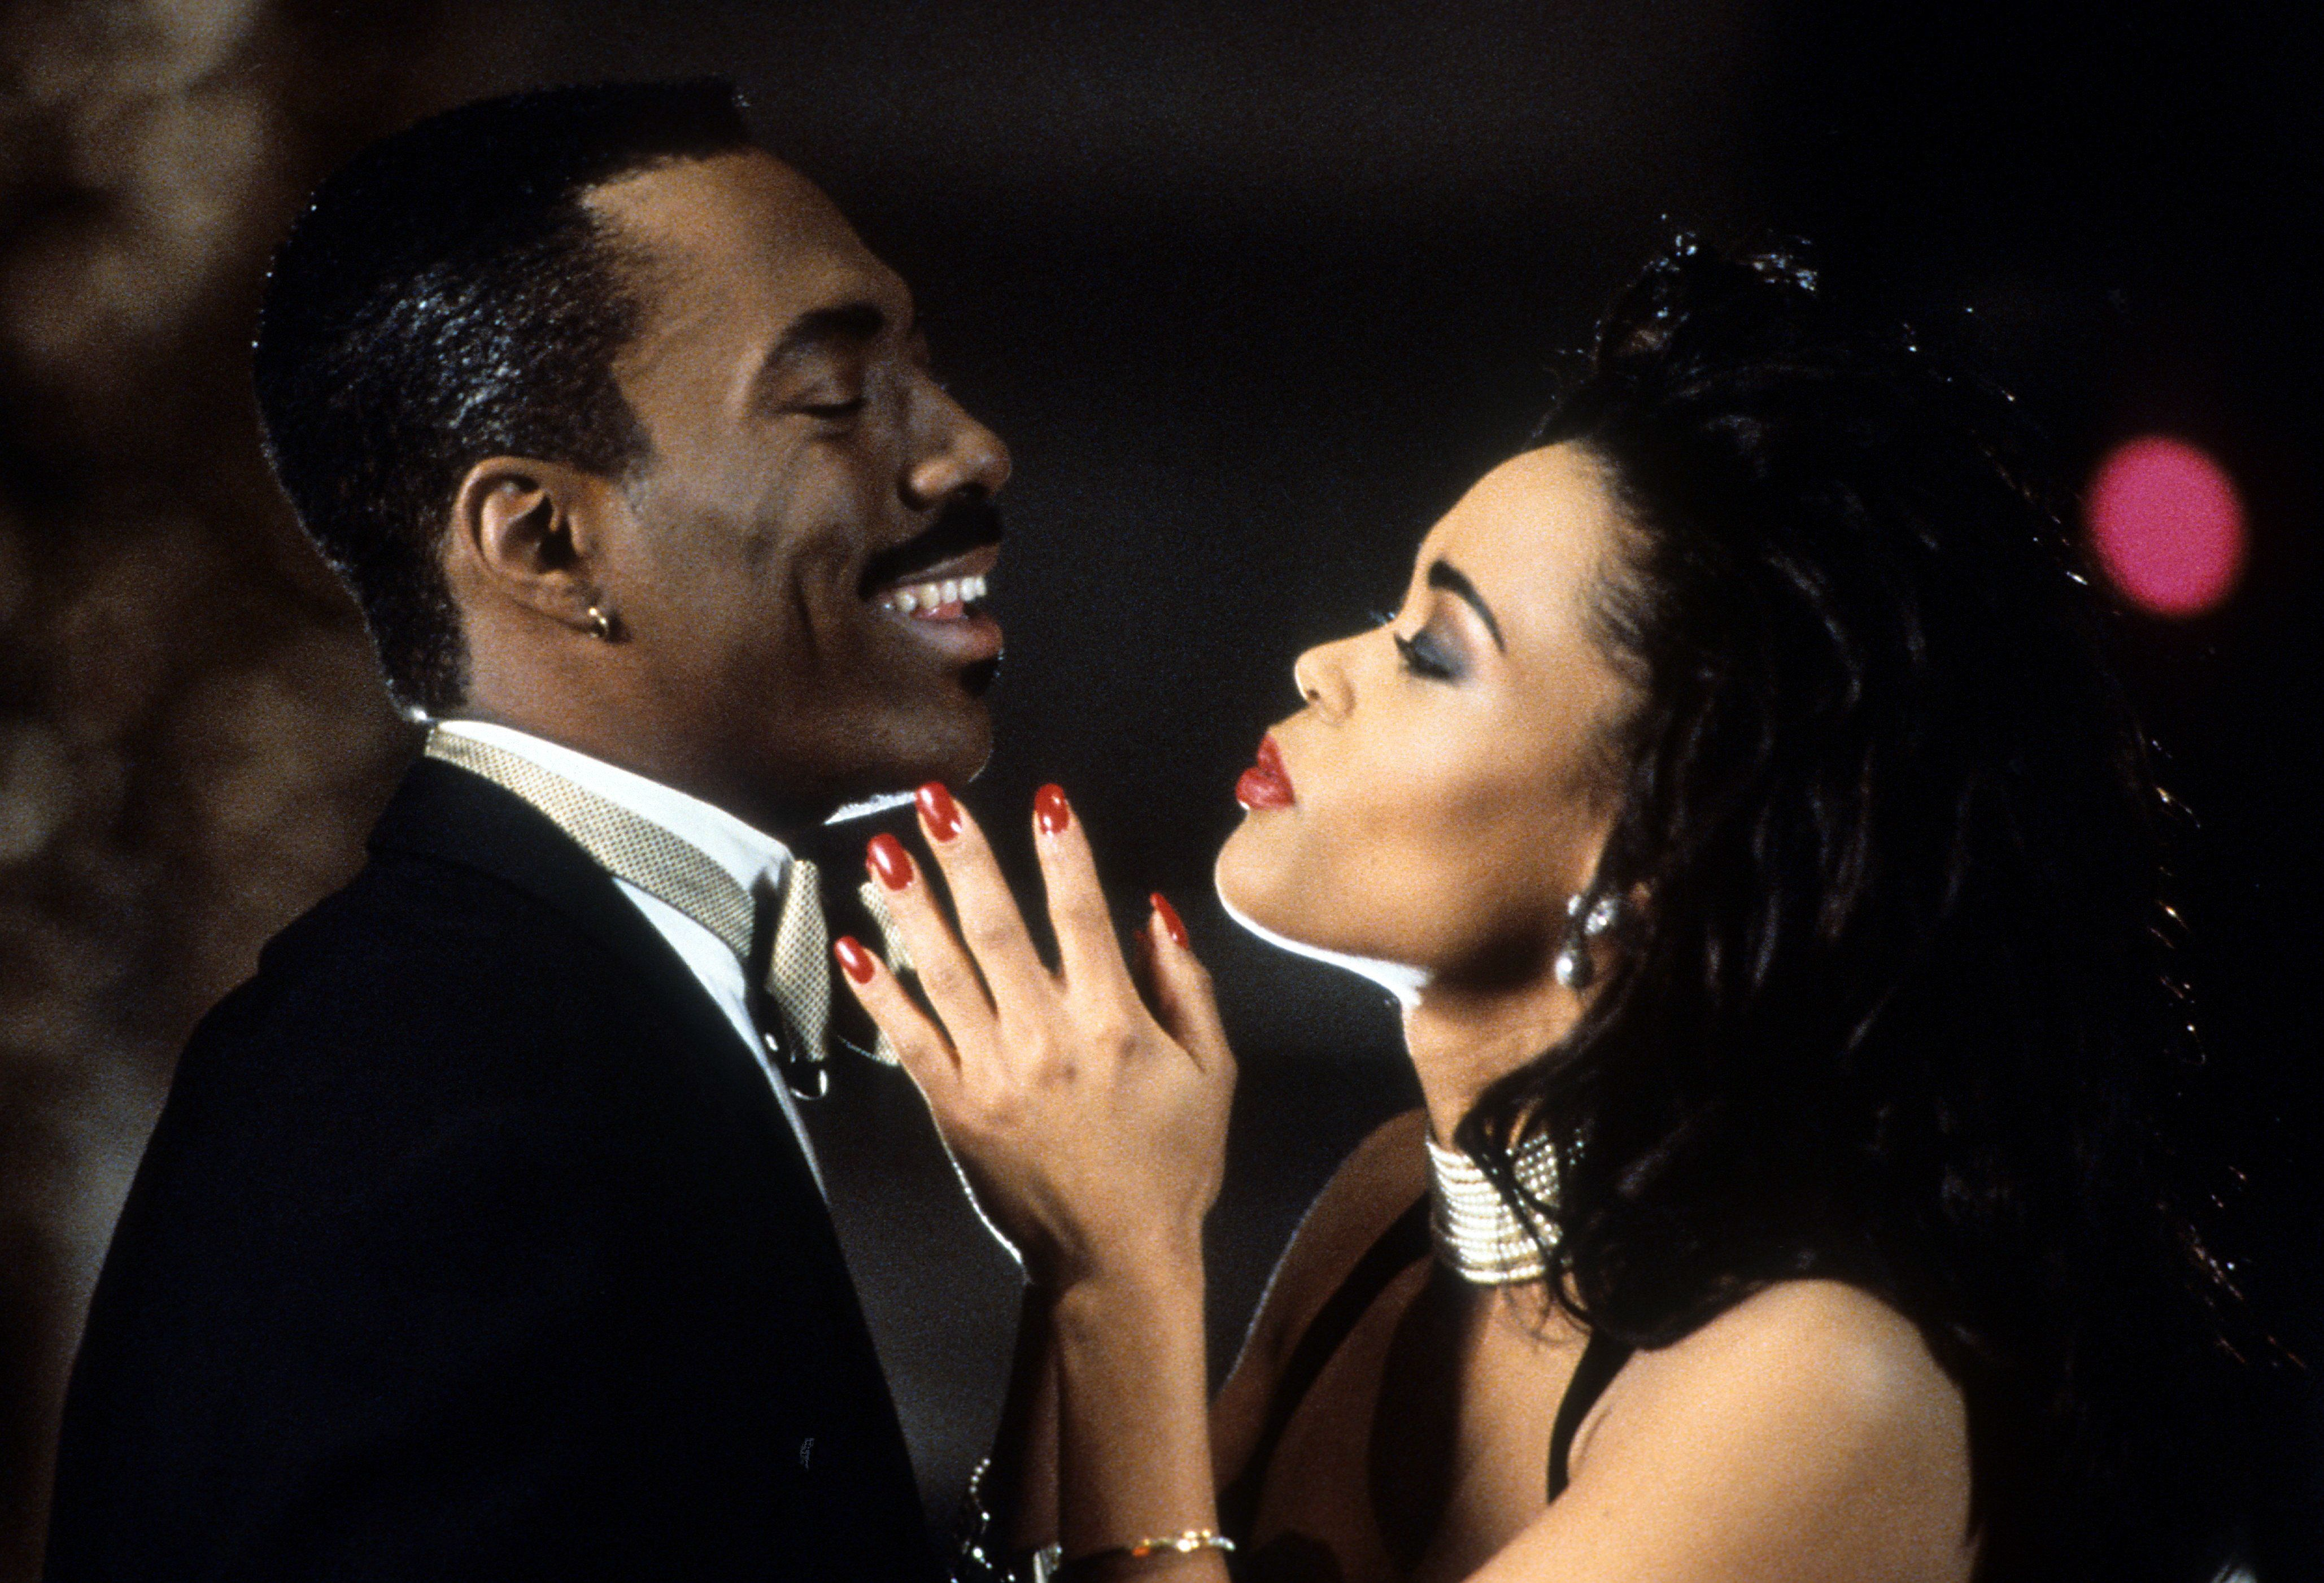 Eddie Murphy and Robin Givens in a scene from the film 'Boomerang', 1992. (Photo by Paramount Pictures/Getty Images)